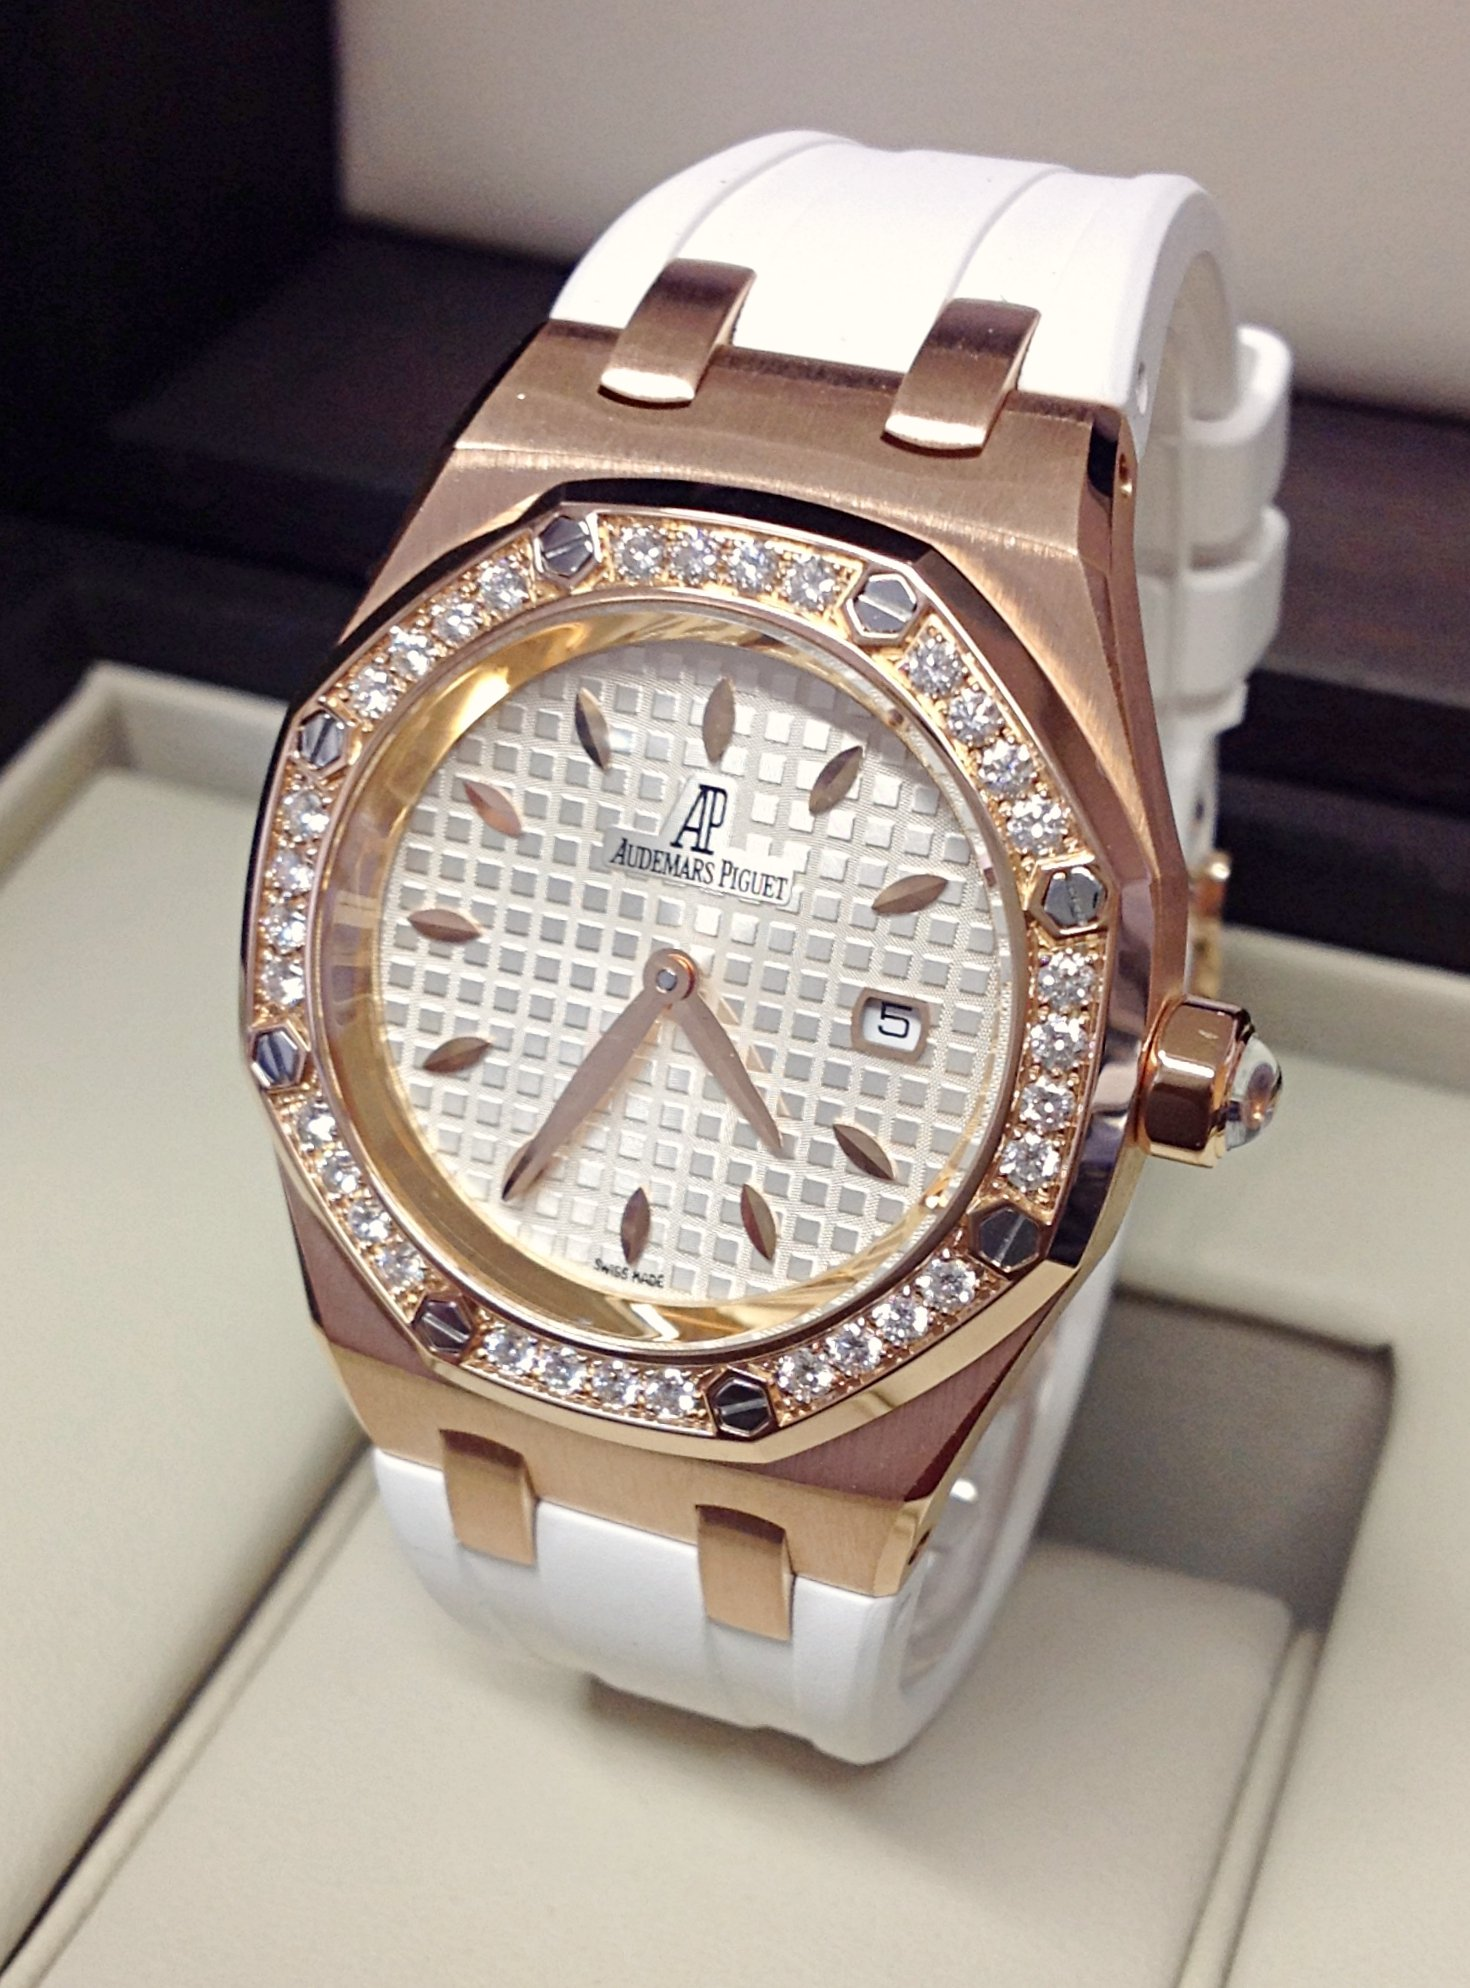 Audemars Piguet Royal Oak Ladies Diamond Bezel